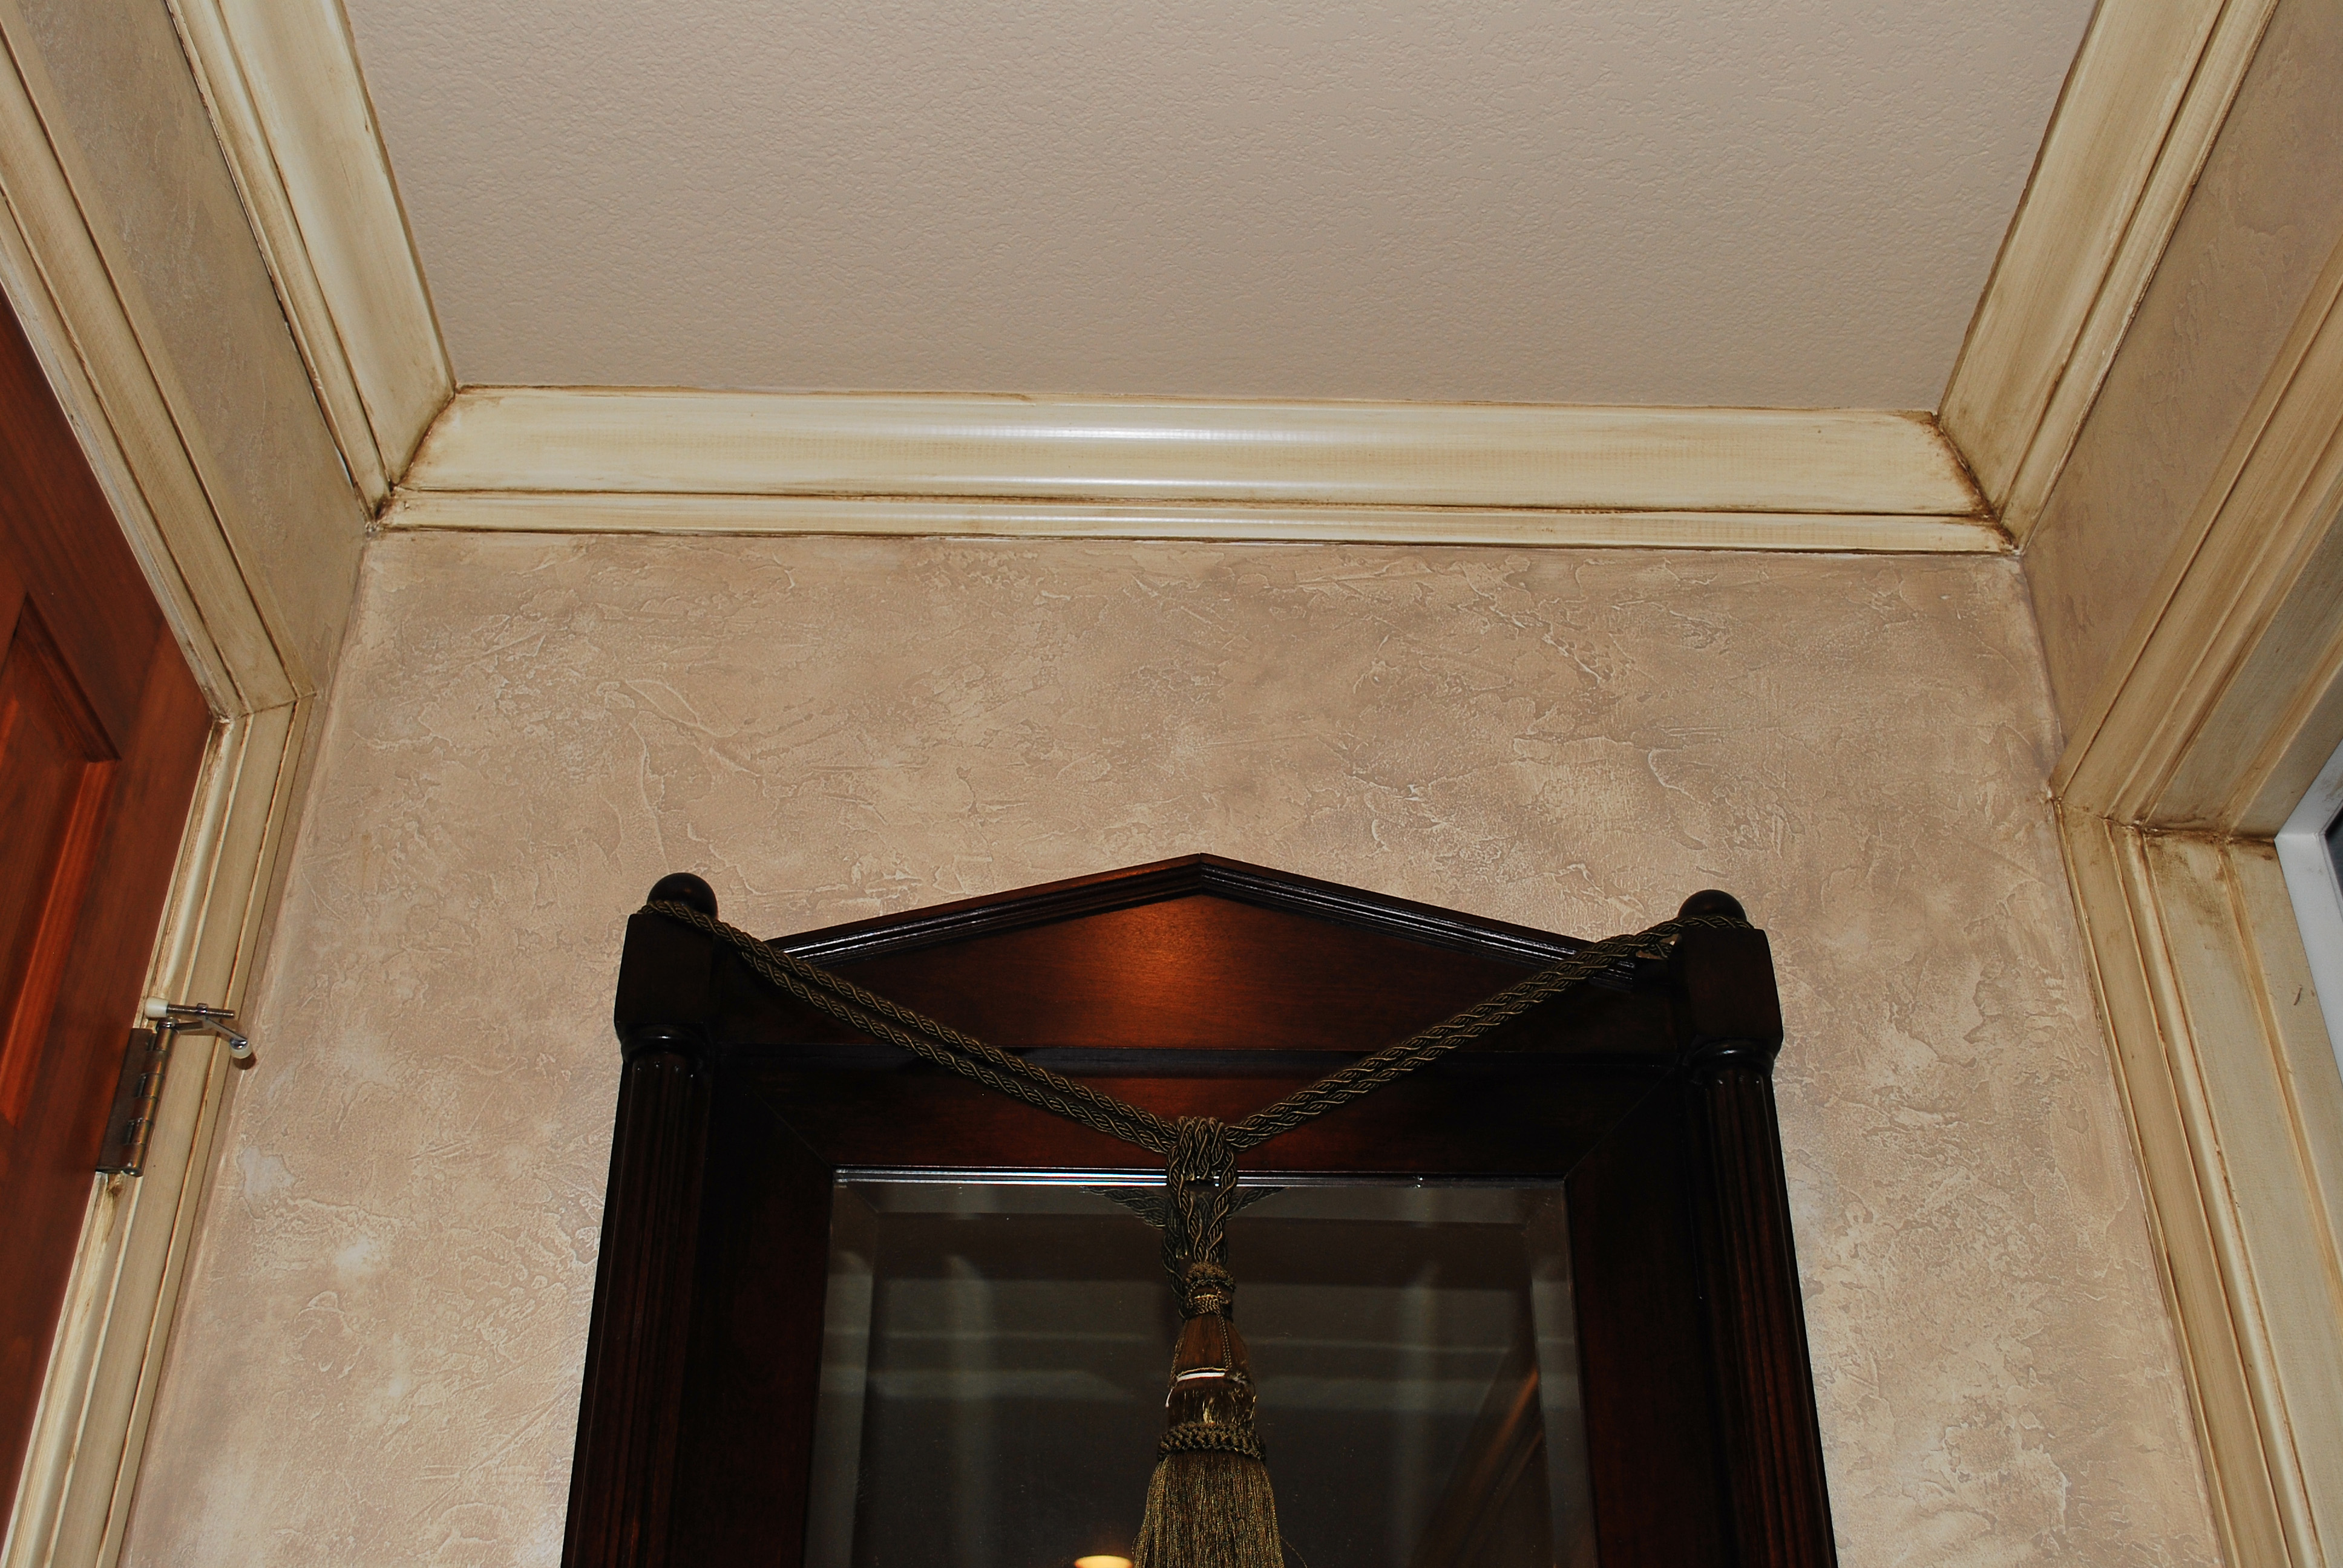 textured walls, faux finishing, faux painting, decorative finishes, Venetian plaster, antique trim